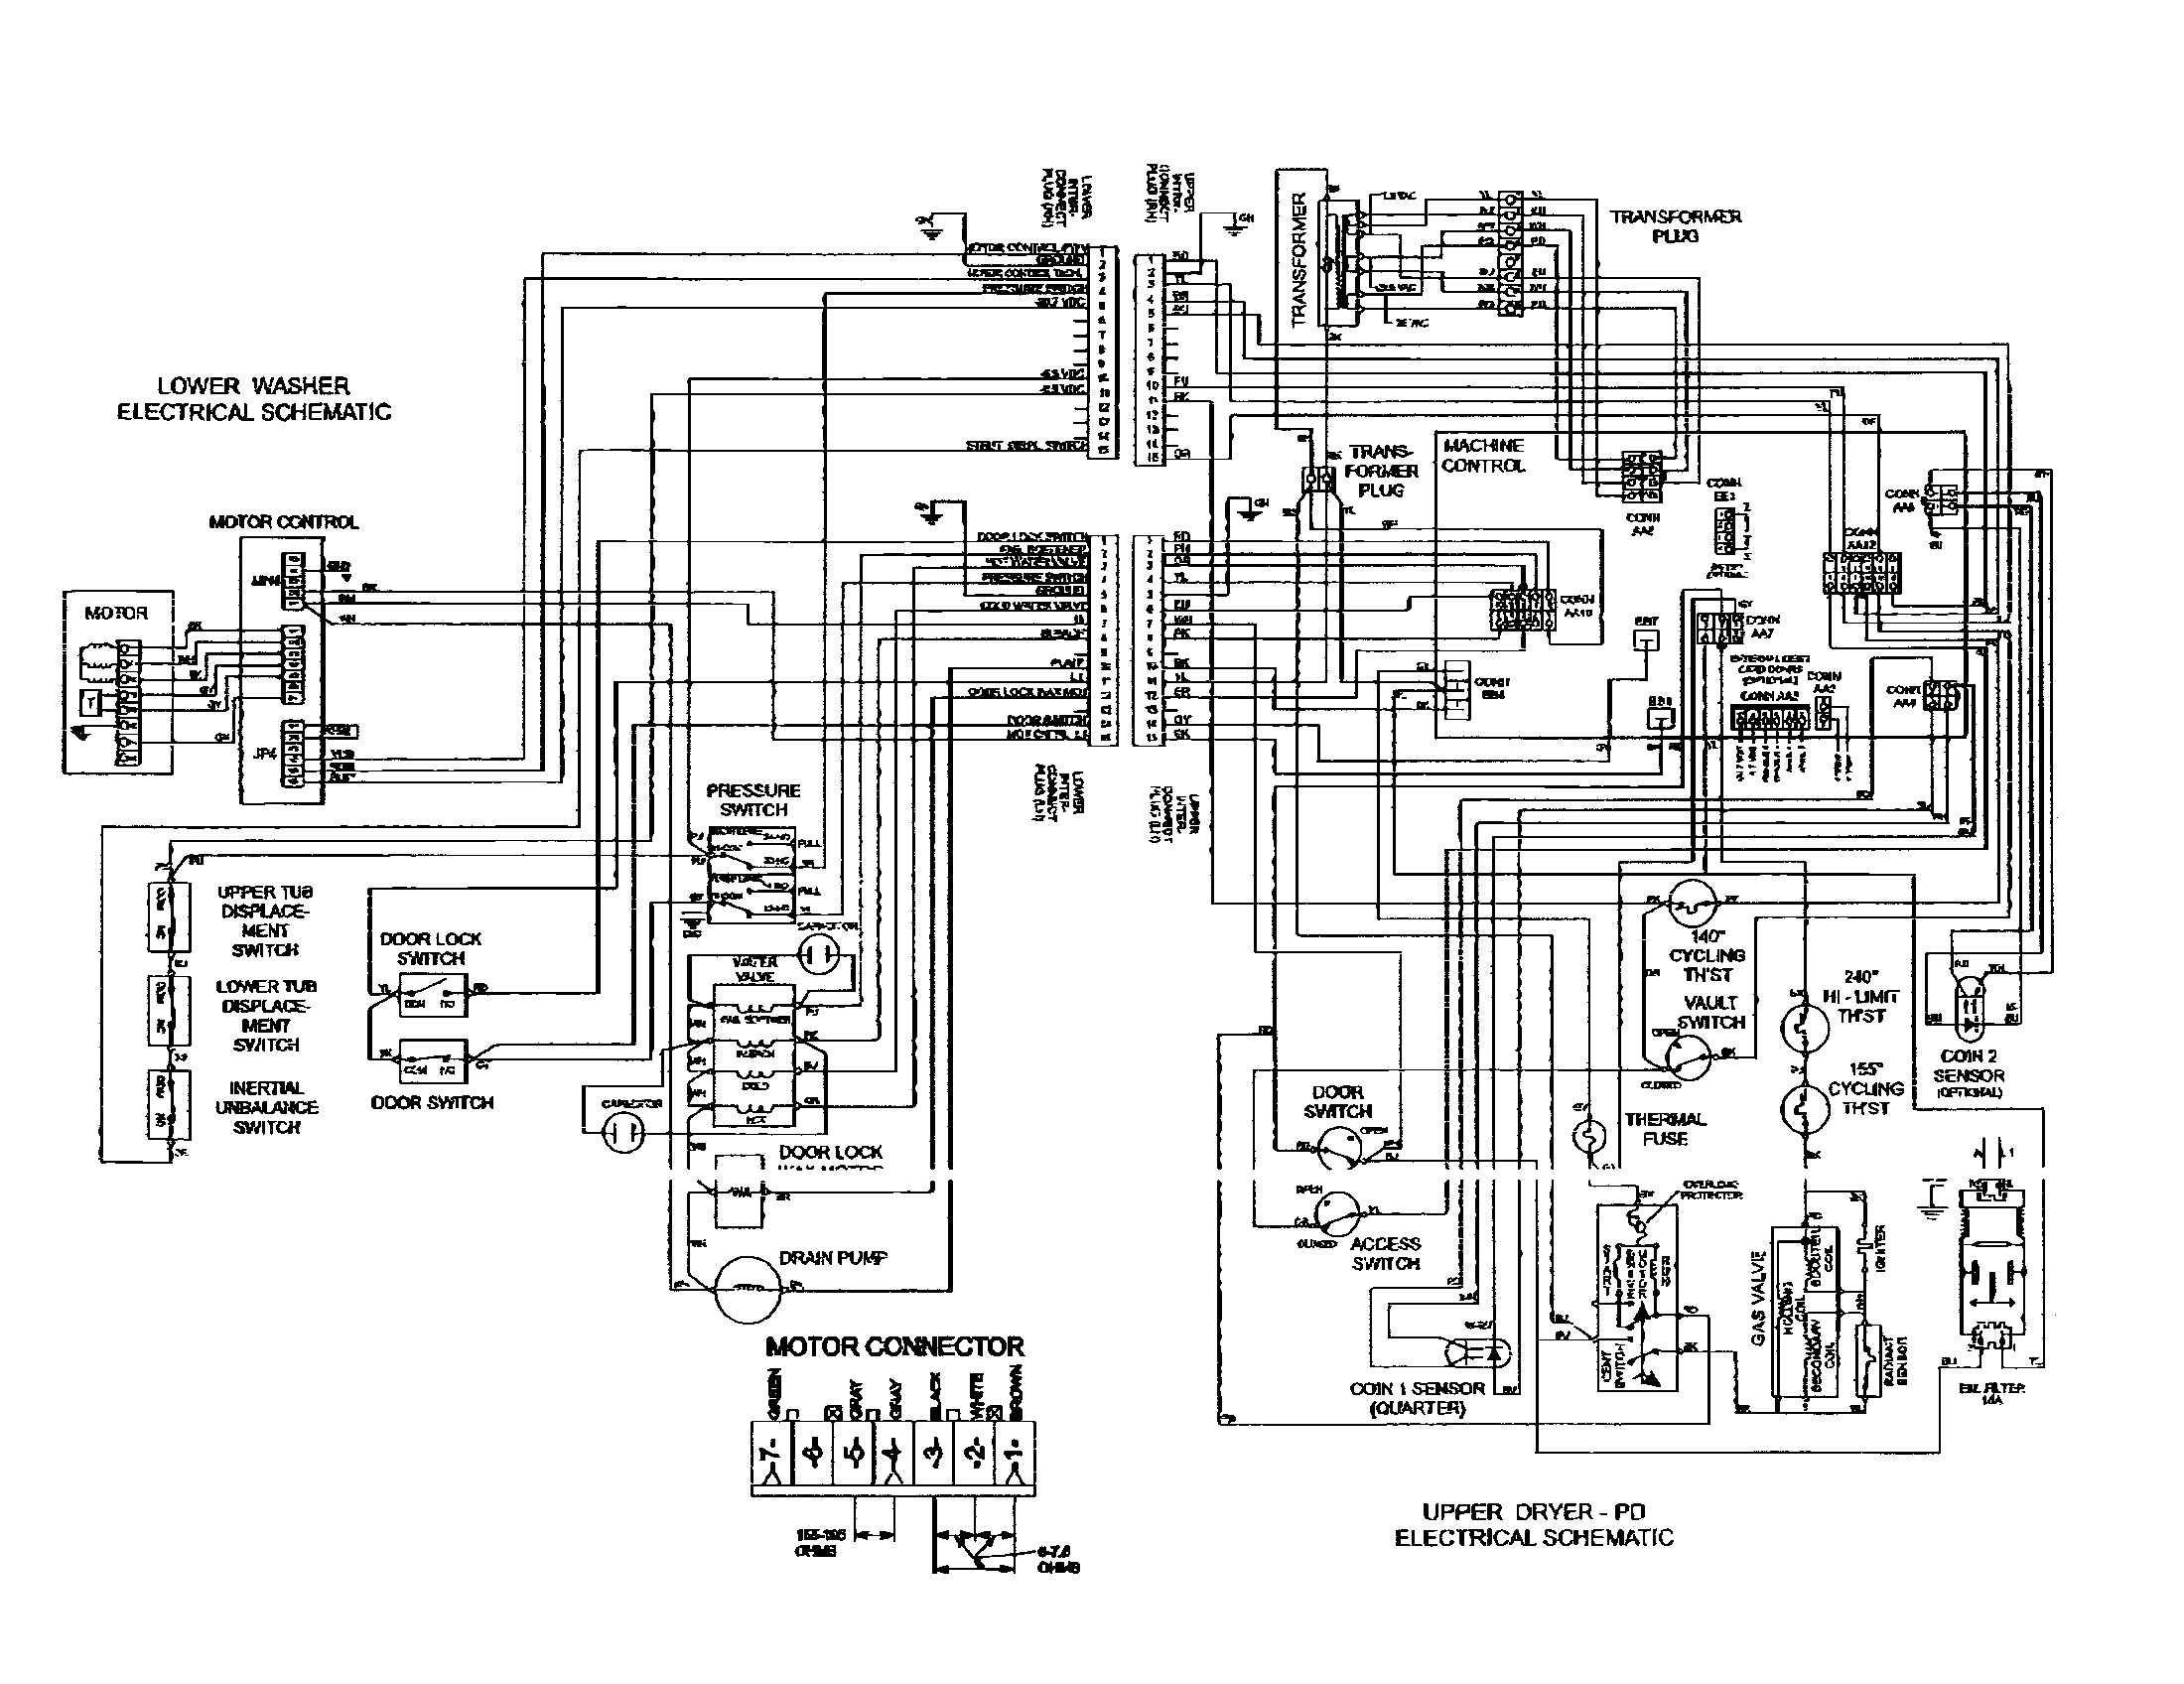 maytag washer wiring diagram Collection-P 3-b